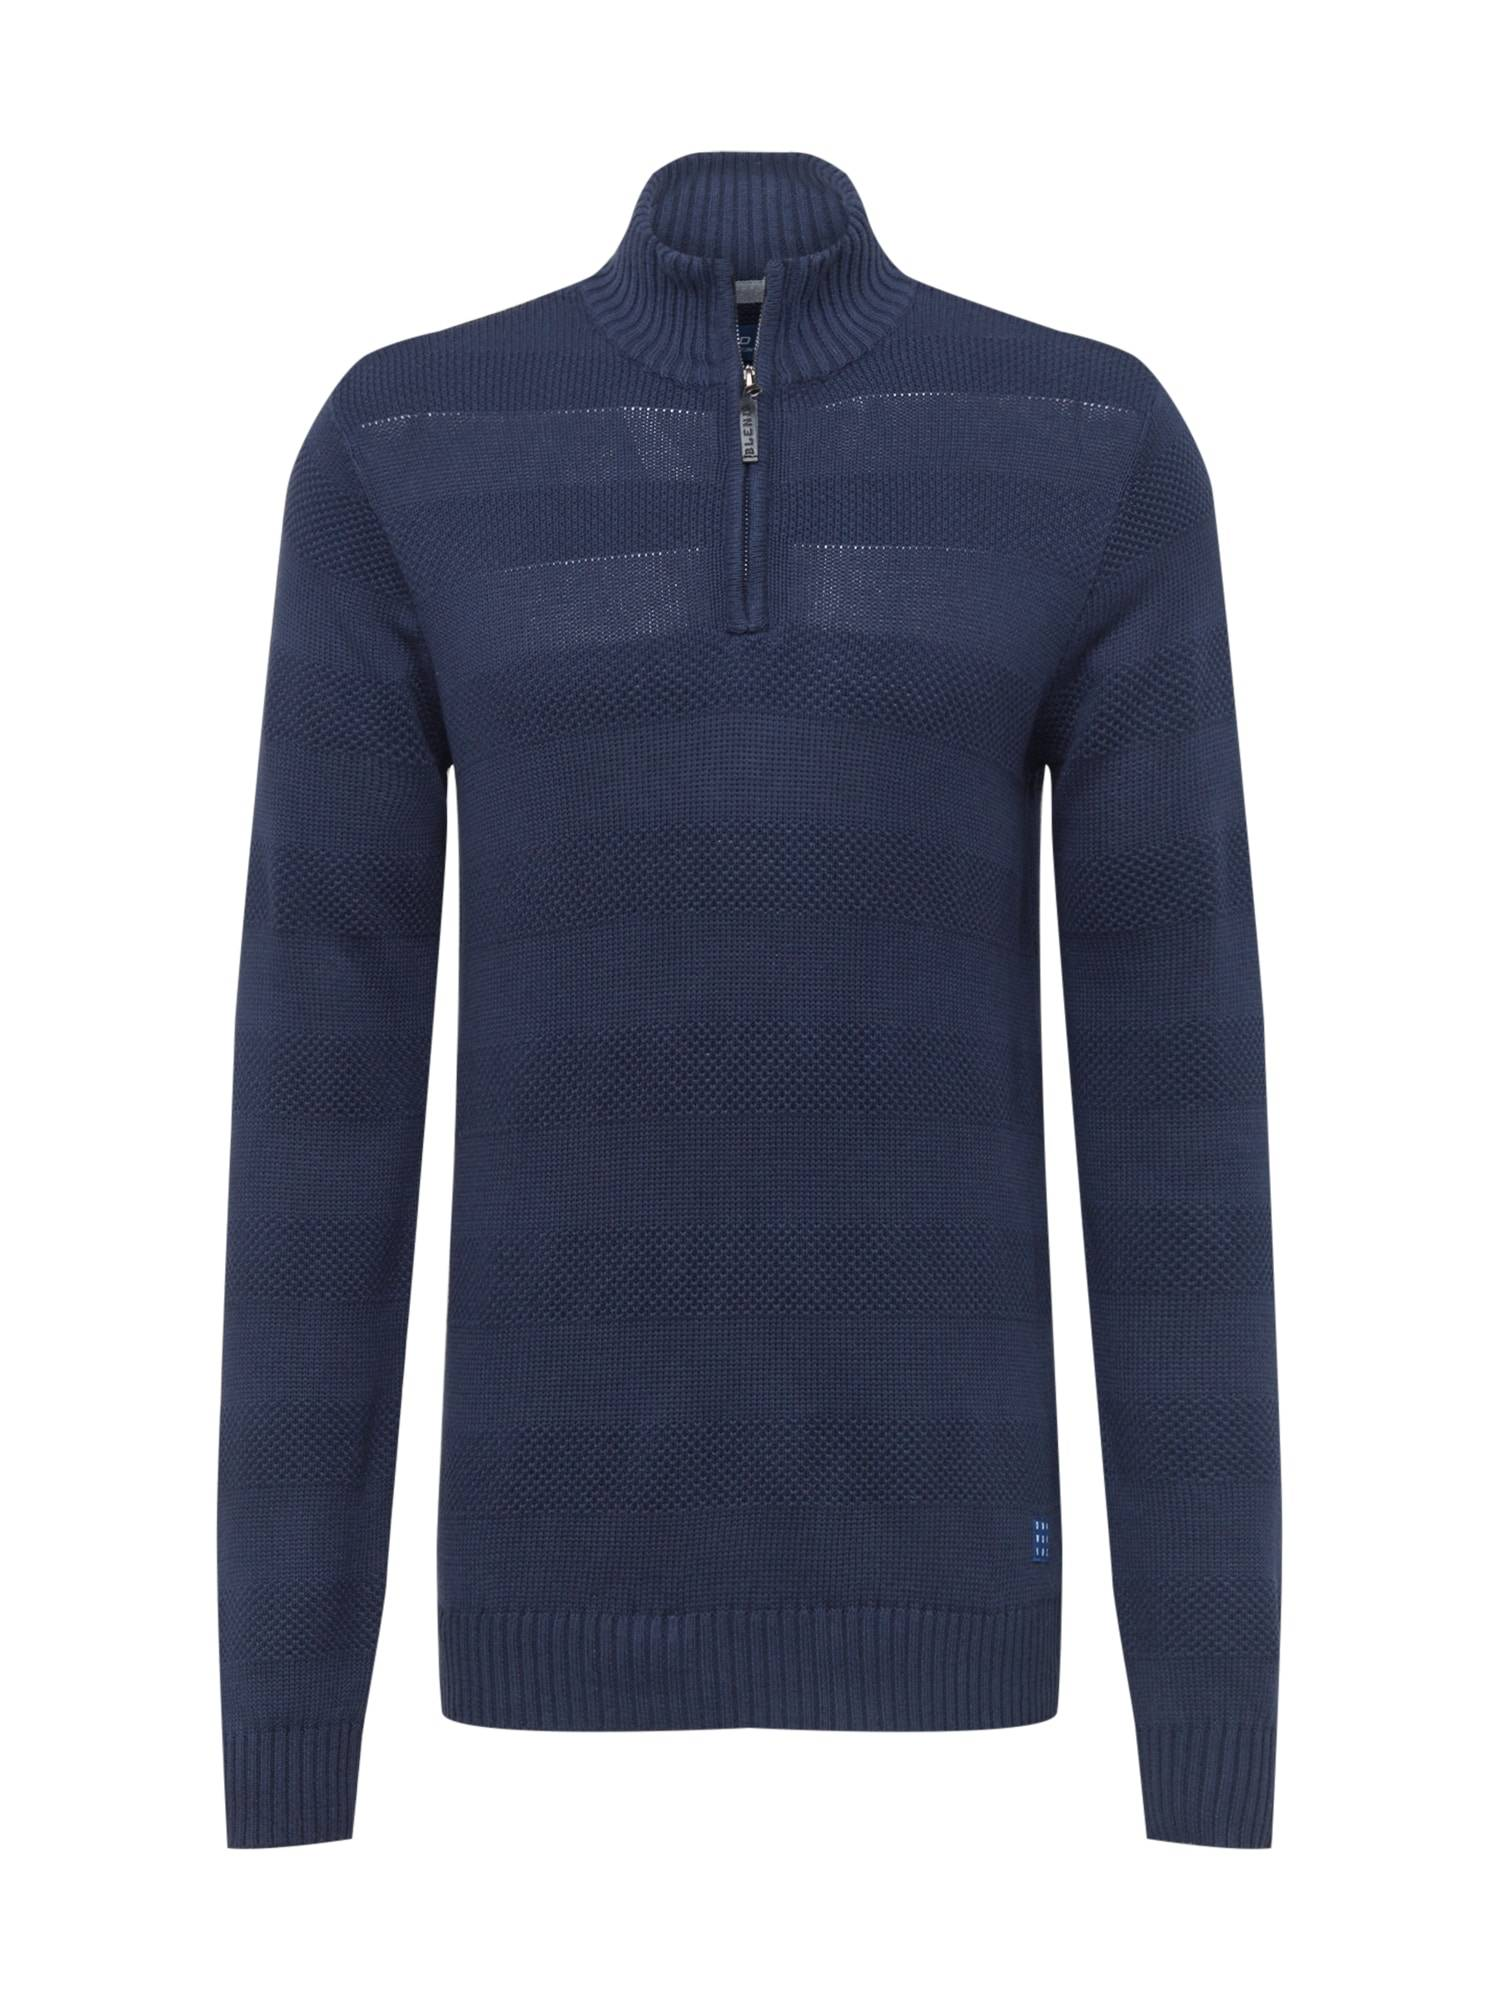 BLEND Pull-over 'Nantes'  - Bleu - Taille: S - male